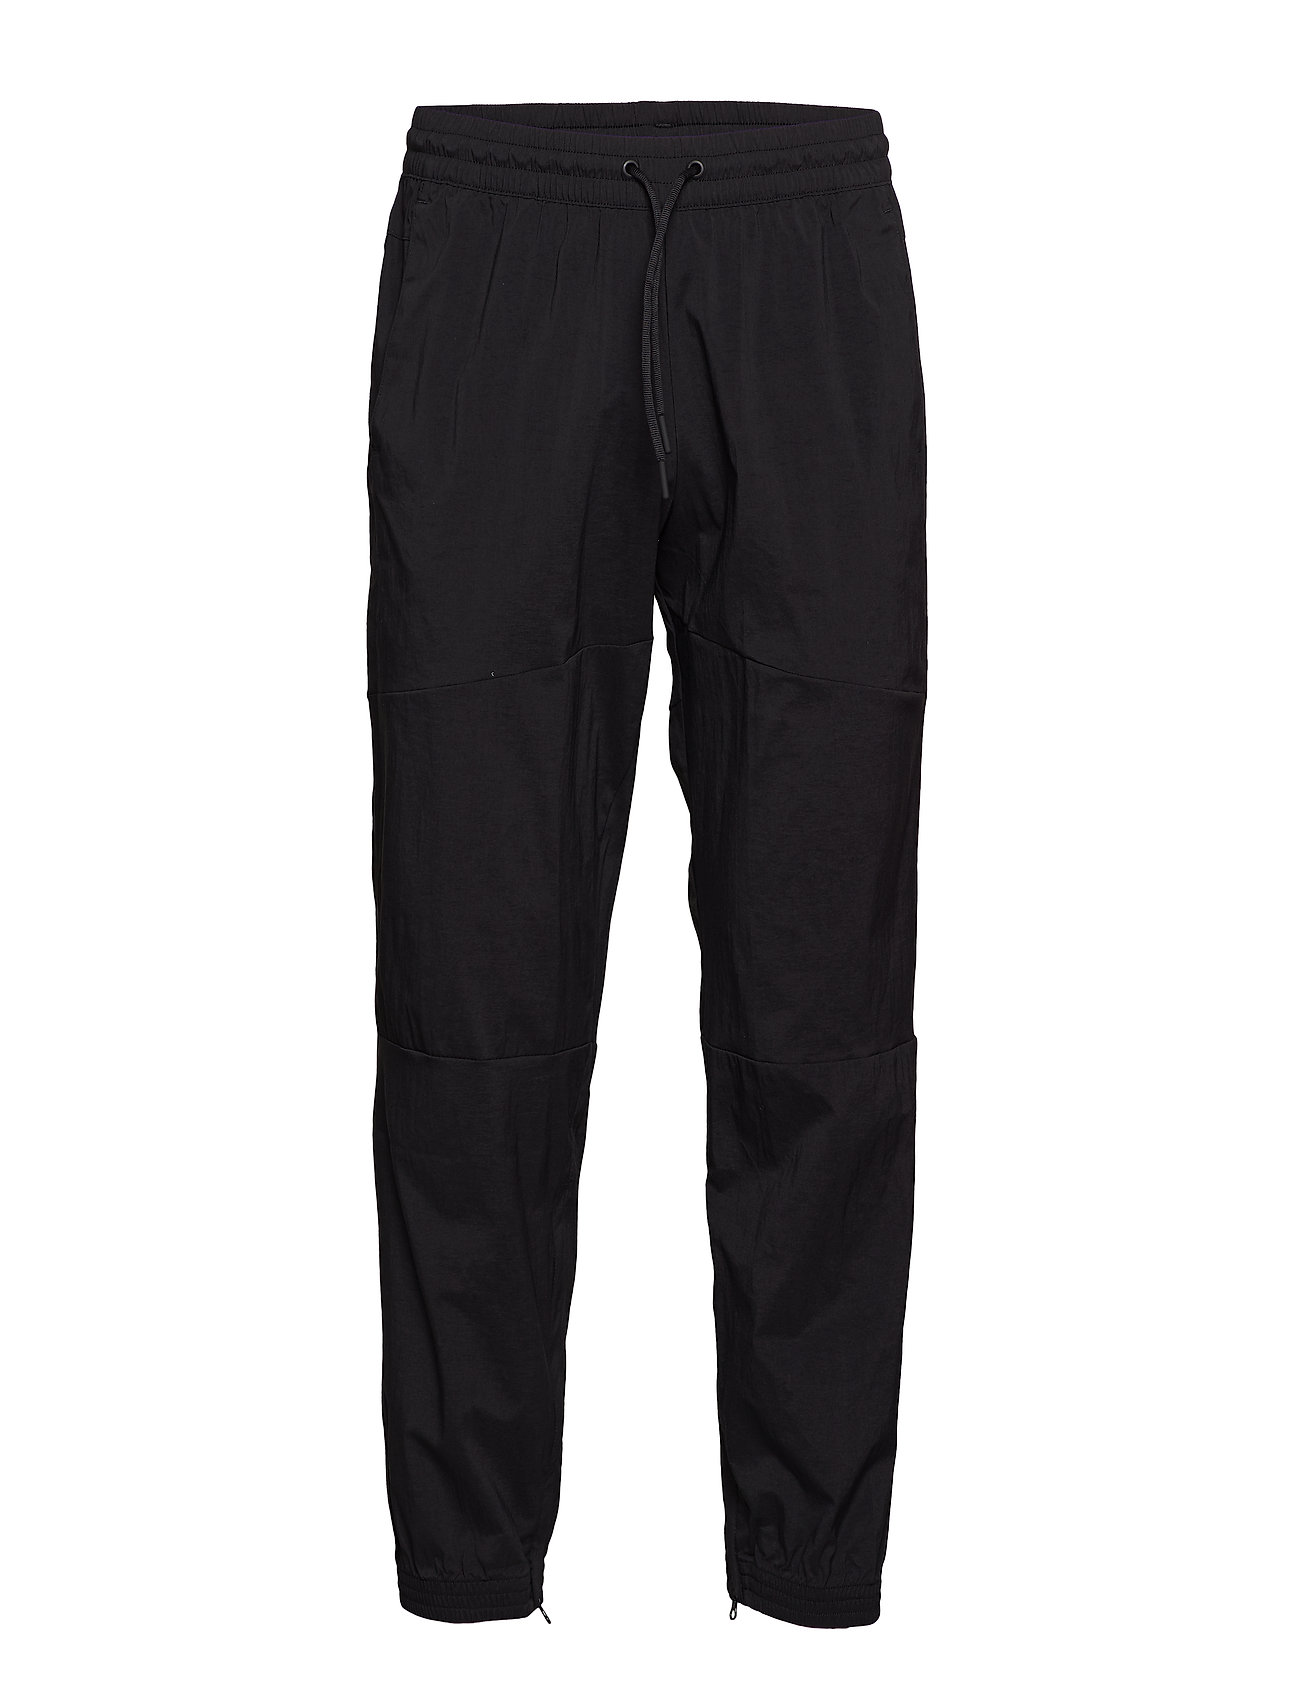 Image of The Pack Pant Sweatpants Hyggebukser Sort Adidas Performance (3327648373)